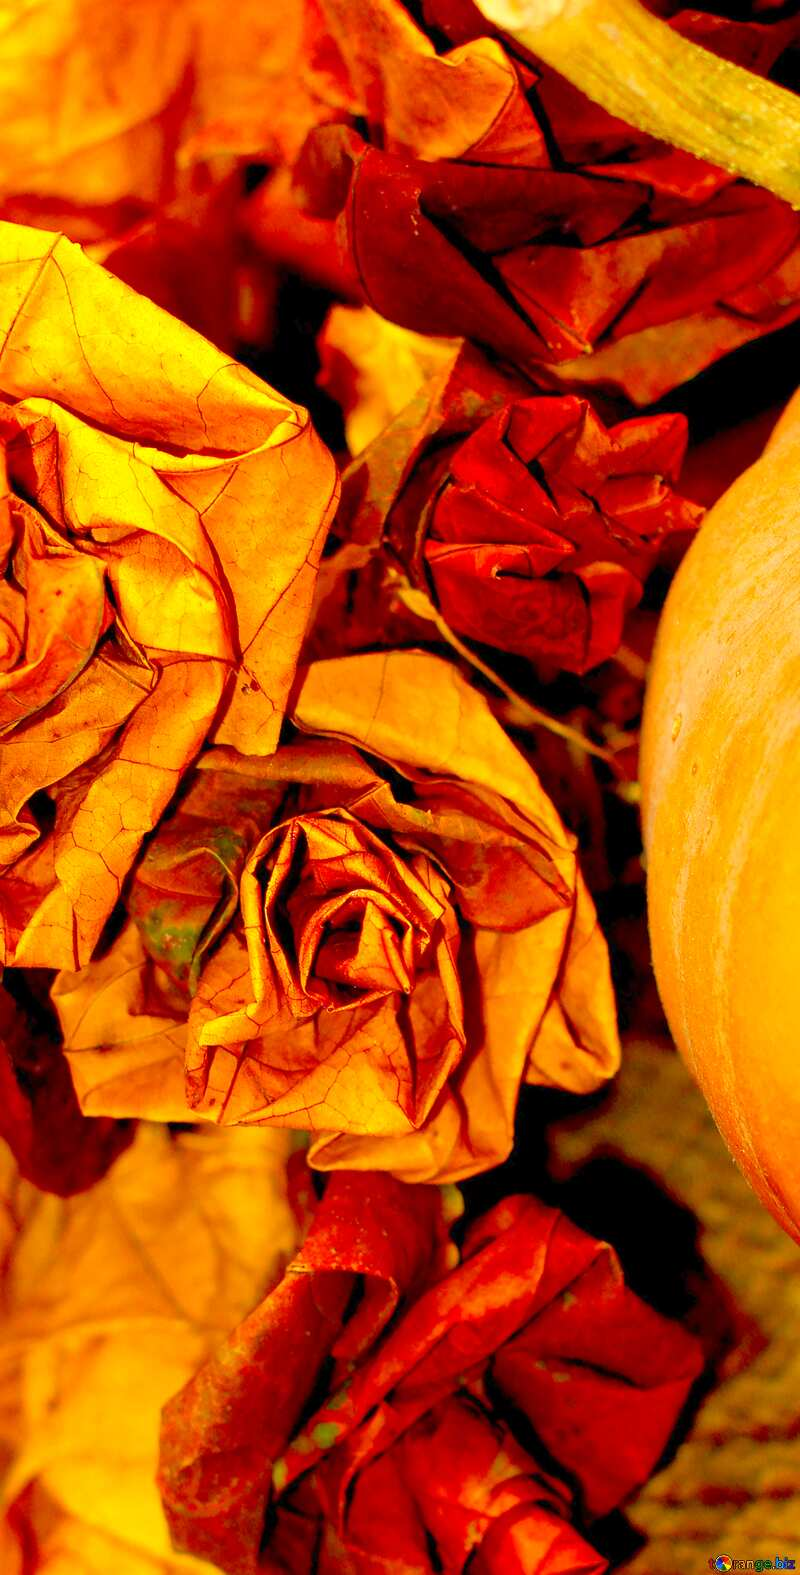 Image for profile picture Pumpkin in the fall. №36021